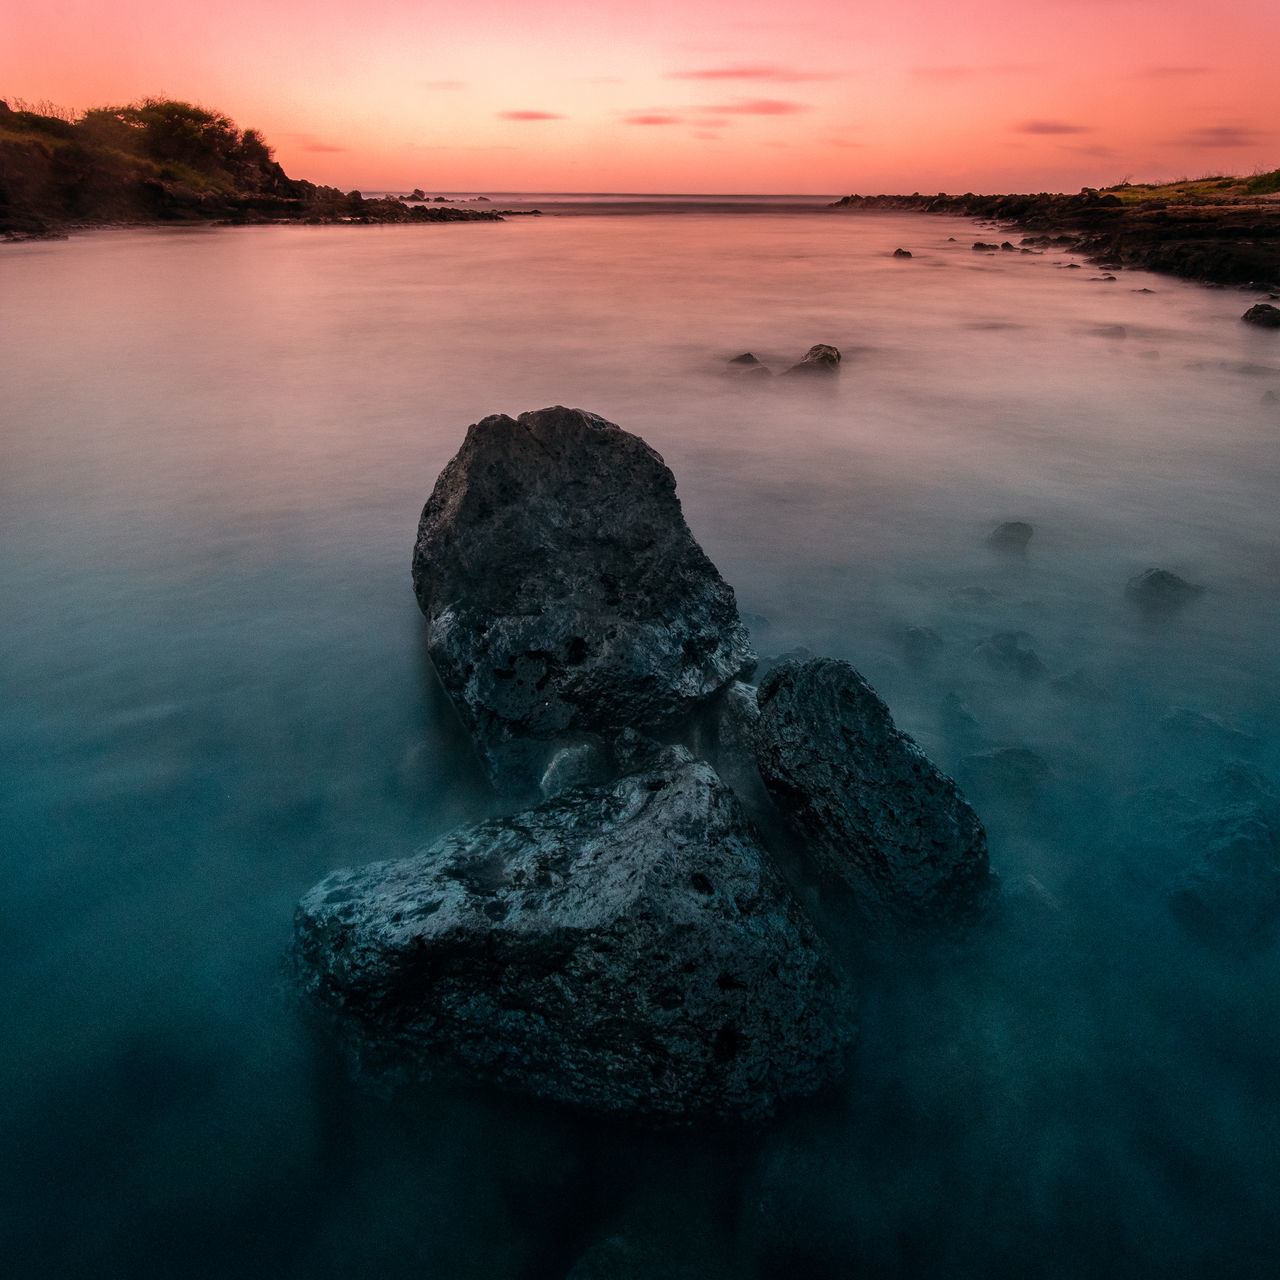 Sunrise 🌅 or sunset 🌅??? Just wondering what you prefer? Beauty In Nature Day Horizon Over Water Long Exposure Nature No People Outdoors Rock Rock - Object Rocks Scenics Sea Sky Sunrise Sunset Tranquil Scene Tranquility Water